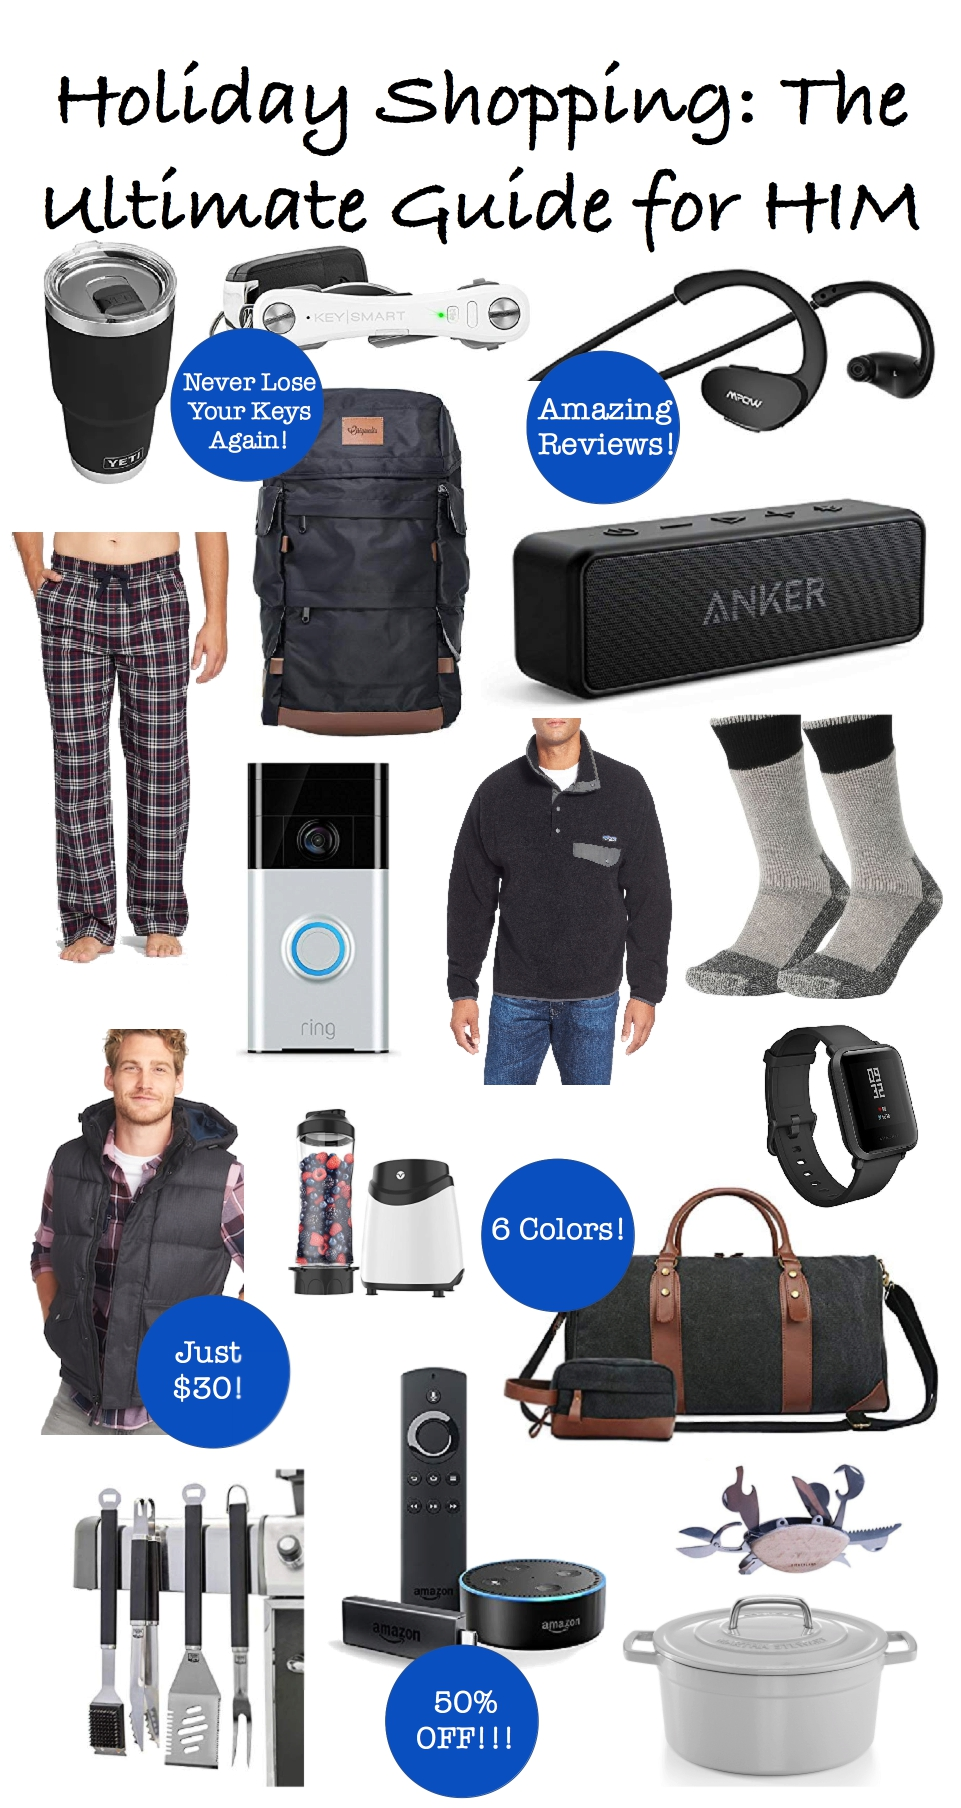 Ultimate Holiday Gift Guide for Men, holiday shopping, Christmas shopping, gift guide for him, what to buy husband, boyfriend, father